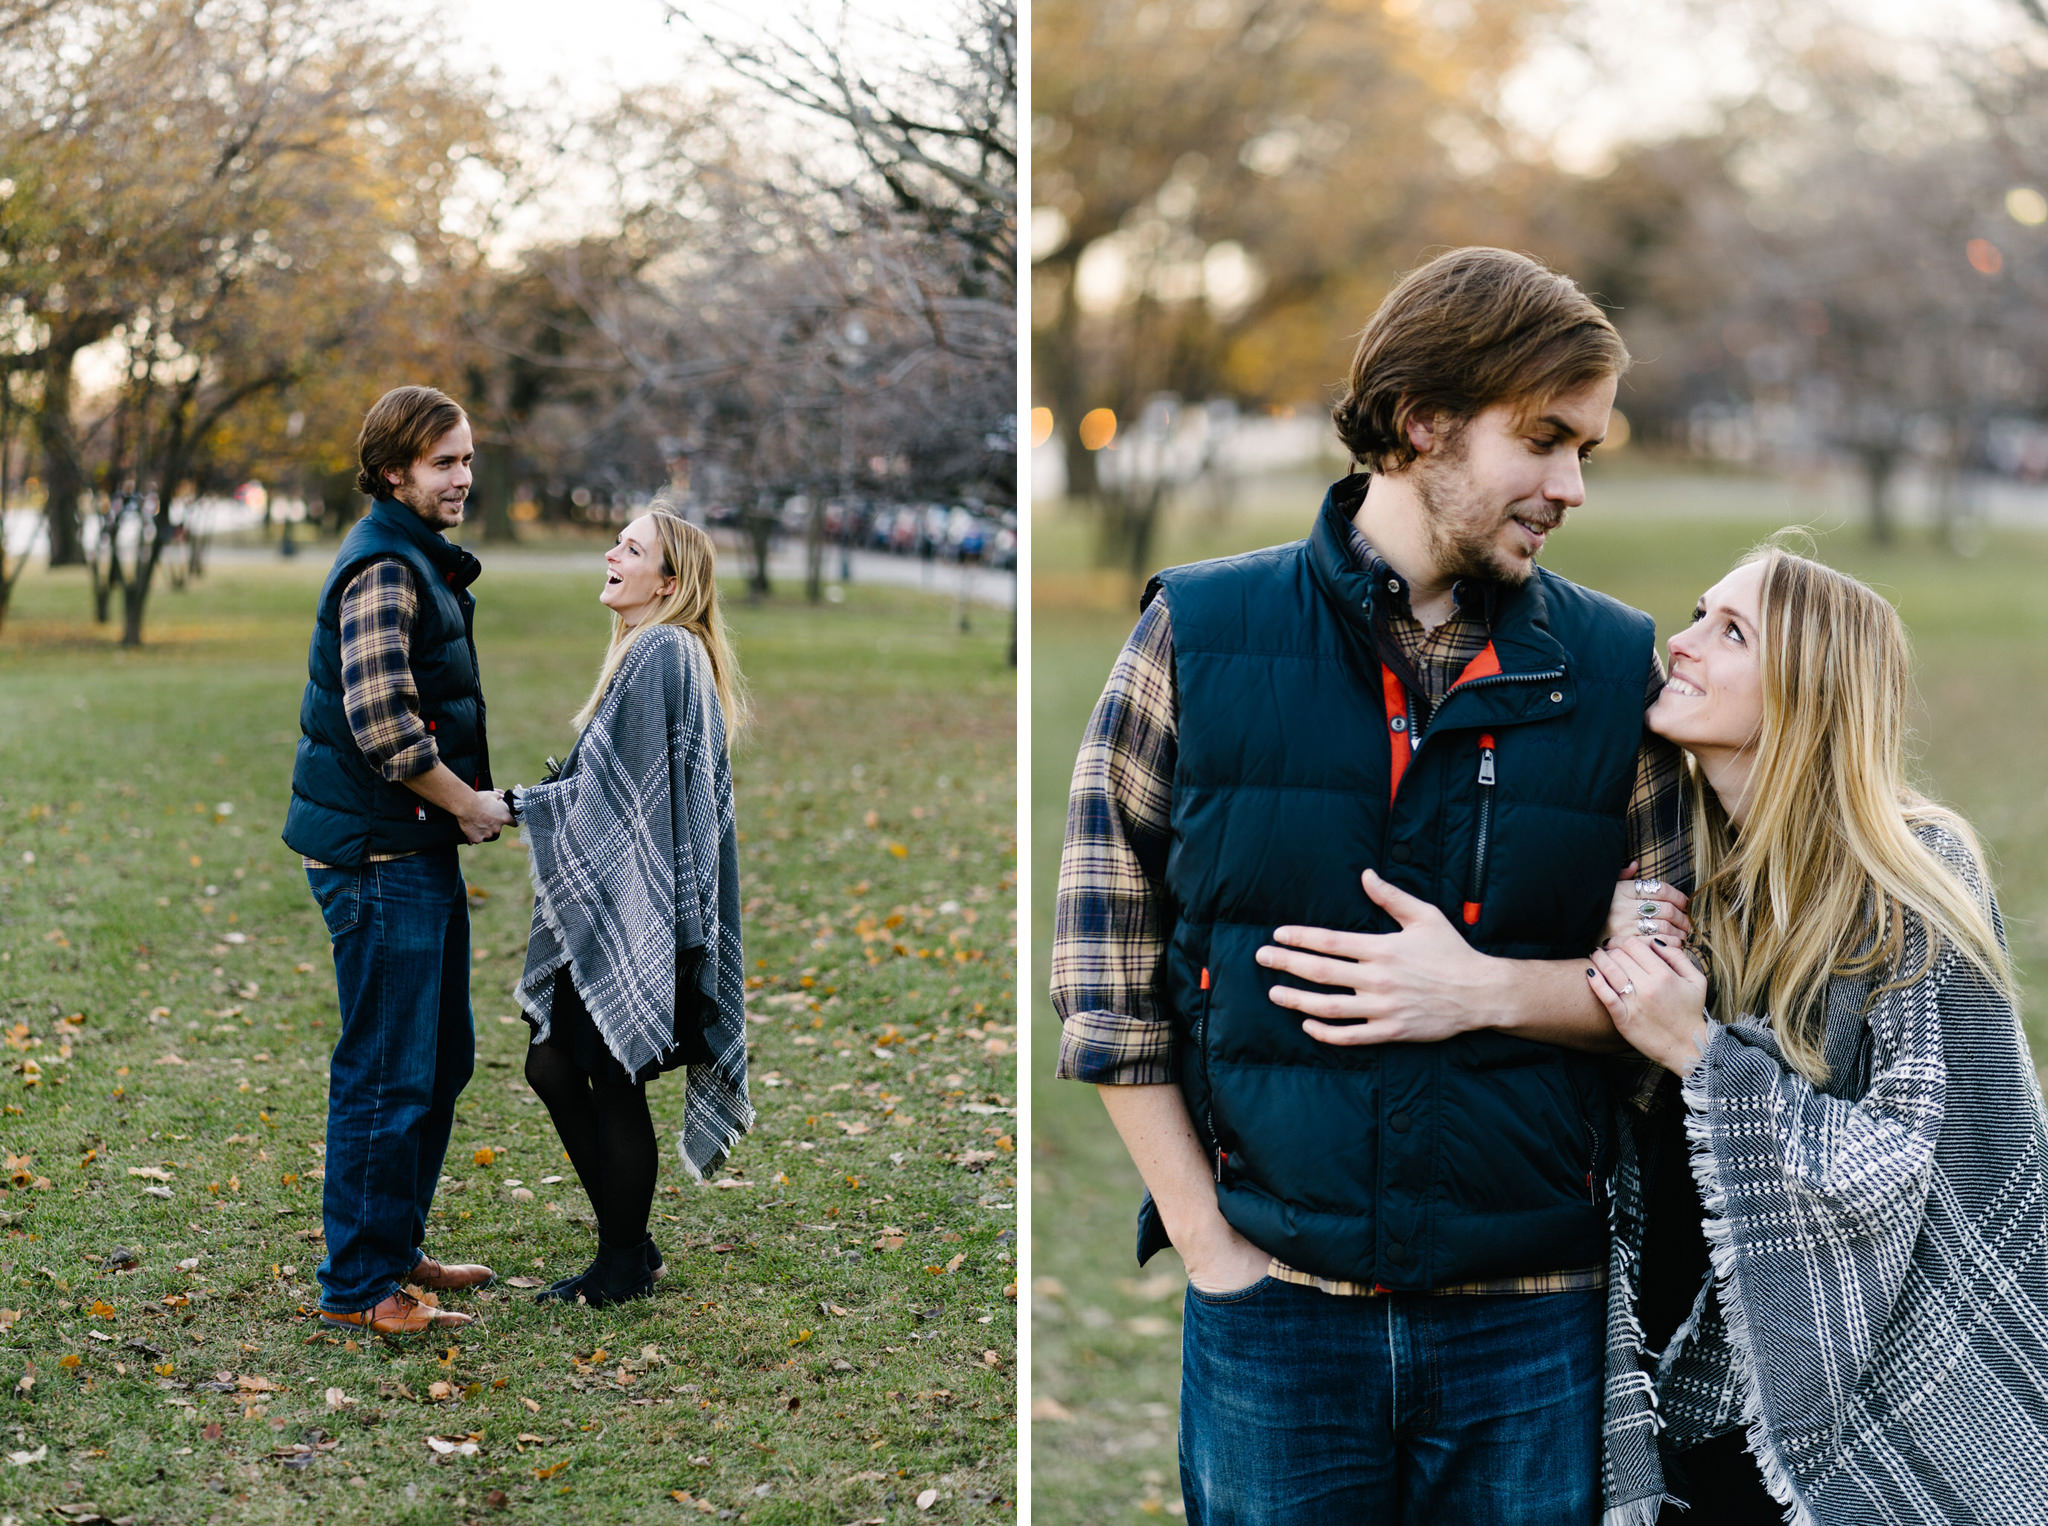 008-rempel-photography-wedding-chicago-family-oak-park-erin-kyle-logan-square-engagement-inspiration.jpg